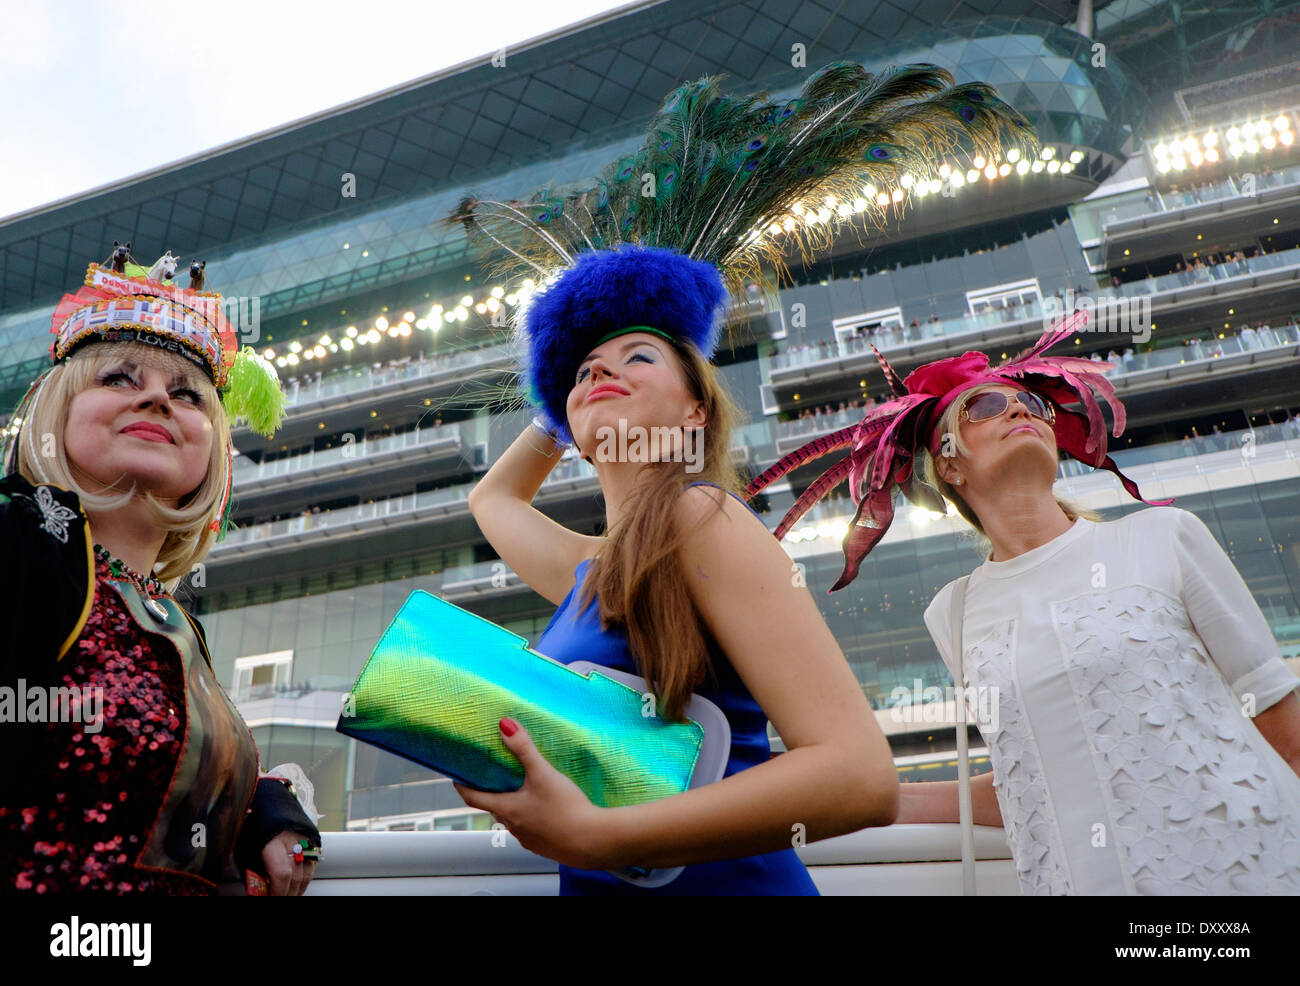 Three fashionable ladies at the Dubai World Cup horse racing championship at Meydan racecourse in Dubai United Arab Emirates - Stock Image